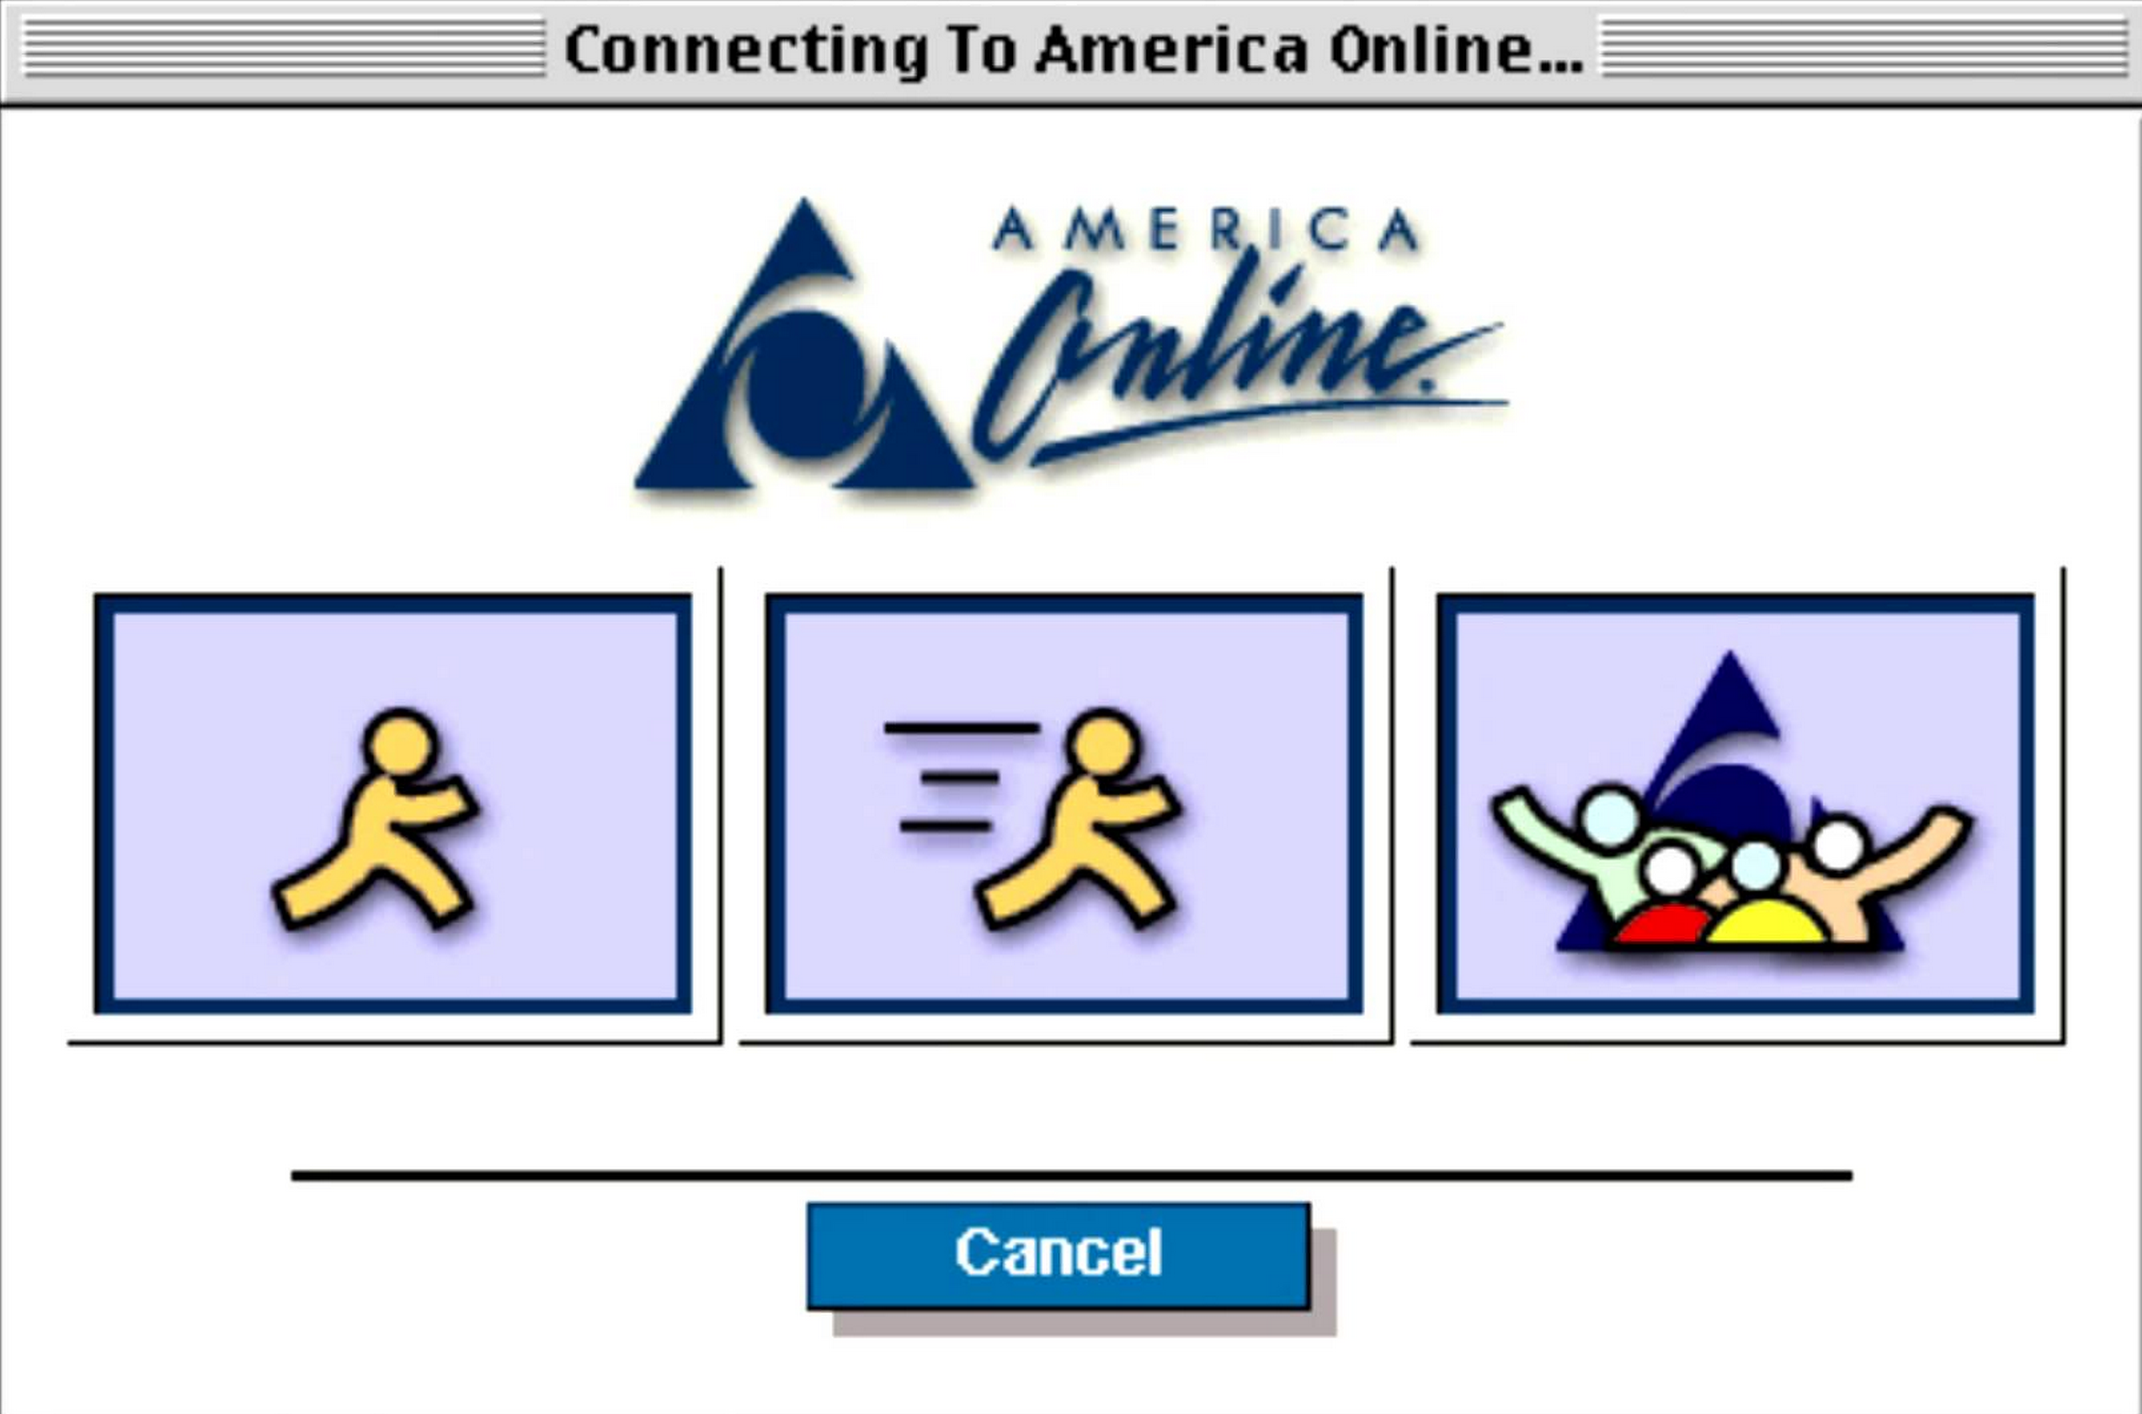 What Do You Miss Most About the Early Days of the Internet?